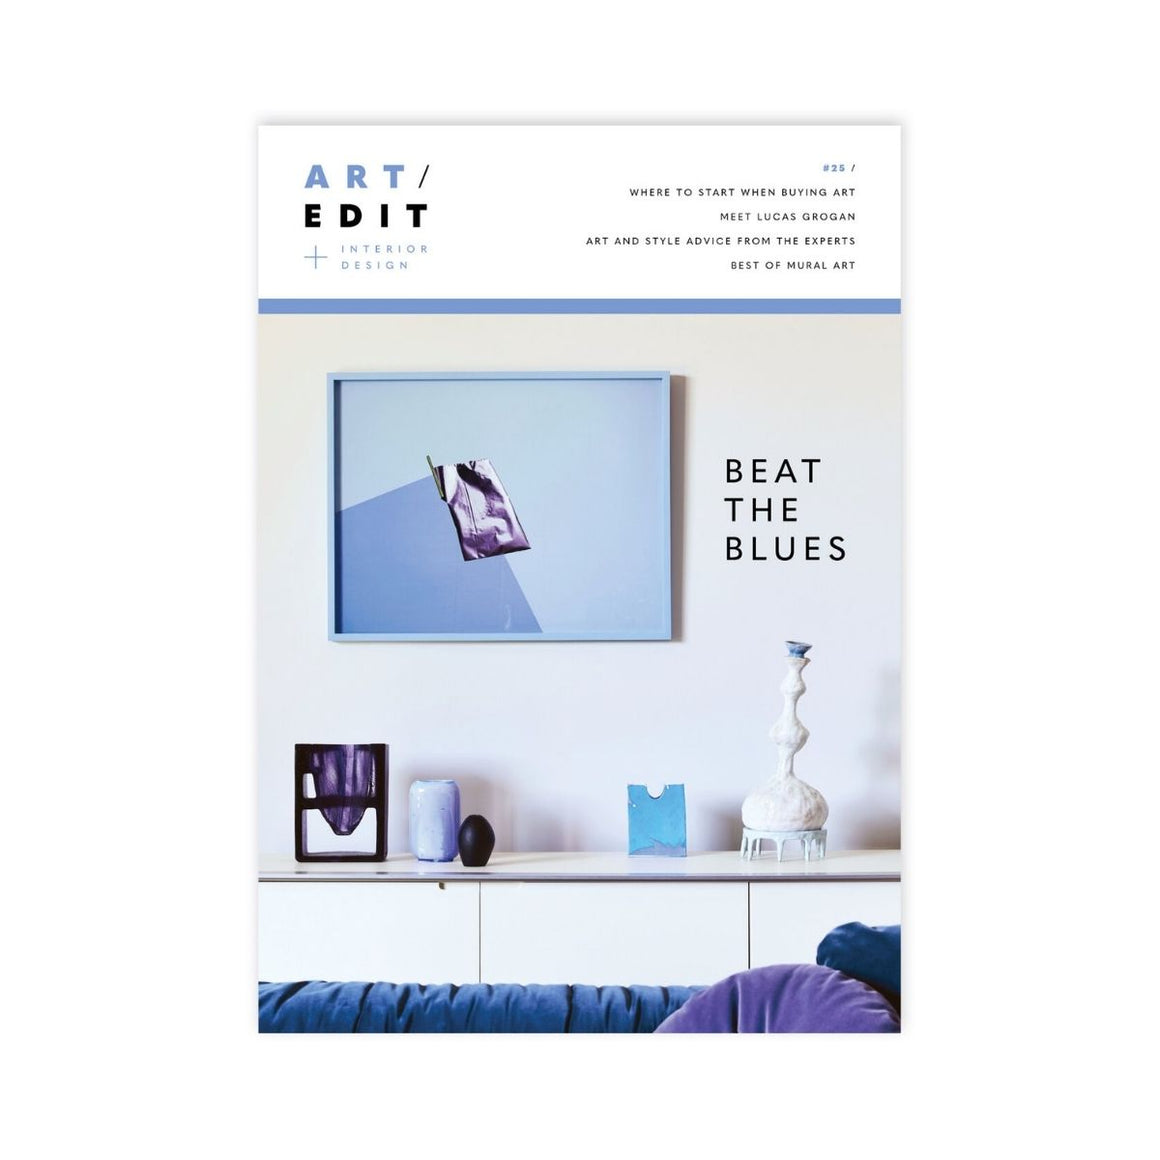 Art Edit Magazine cover featuring a photograph of an interior of a living room which features a blue focused painting surrounded by various blue objects and sculptures